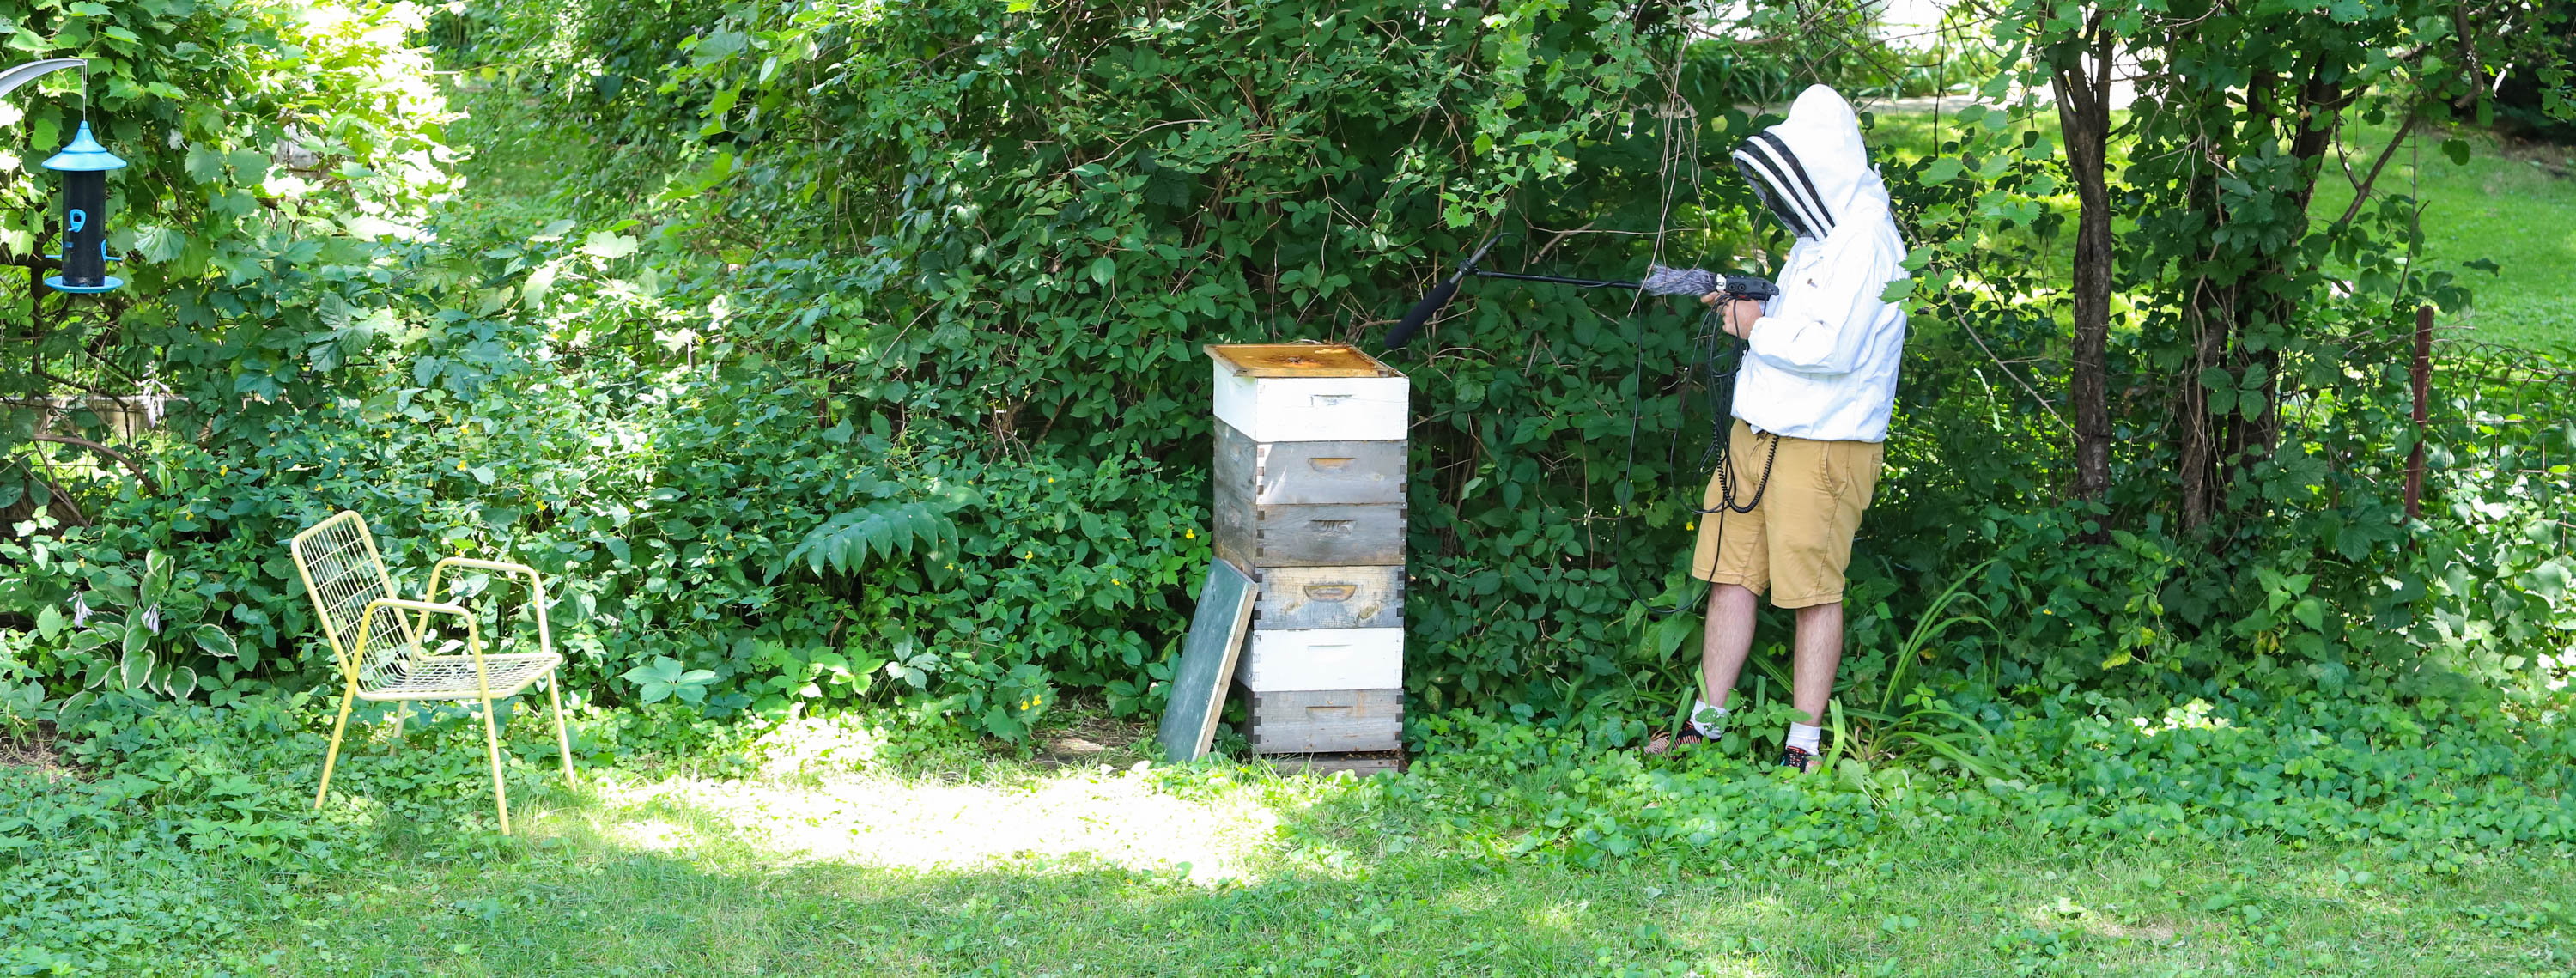 Producer Mark Riechers records some extra bee ambience. Shorts were ill-advised but he never got stung. <em>Shannon Henry Kleiber (TTBOOK)</em>